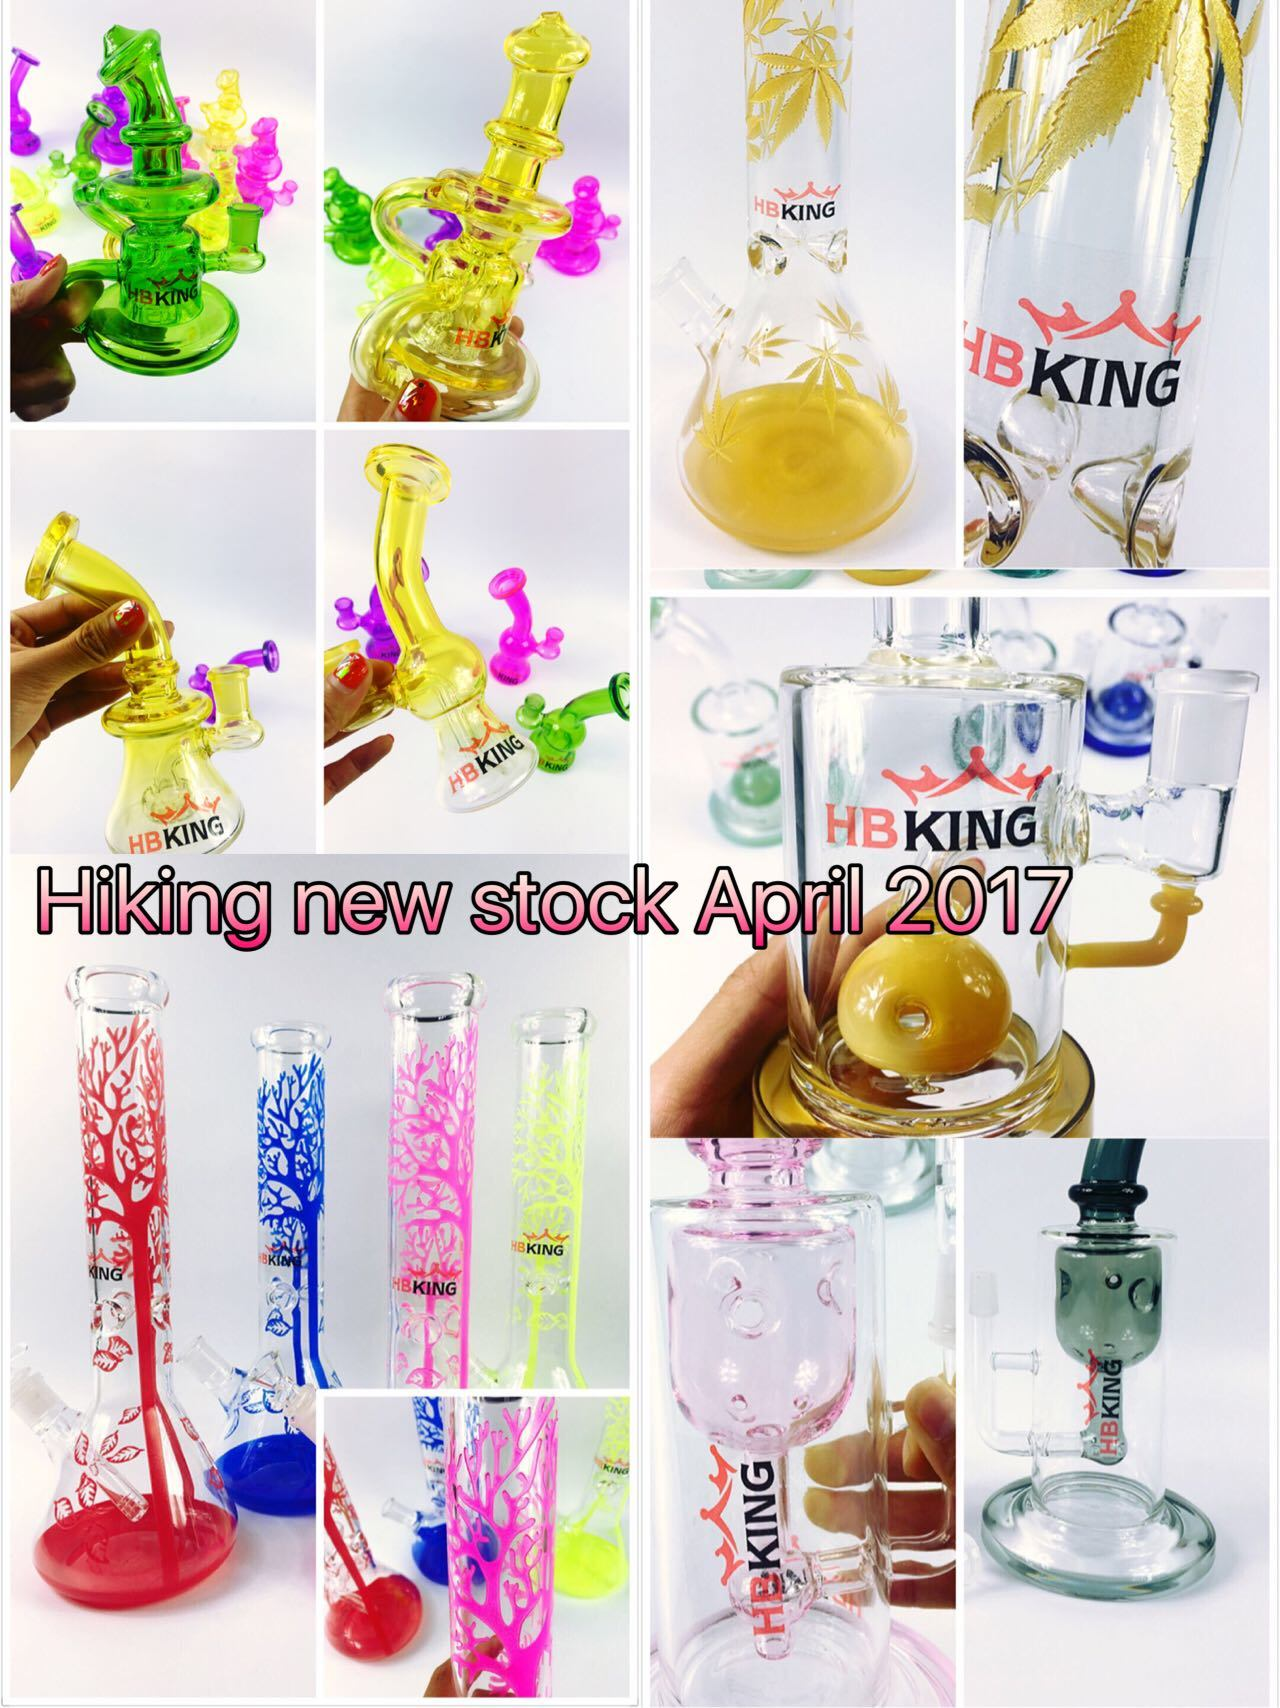 Enjoylife Klein Recycler Egg Glass Water Pipe with Your Brand Service